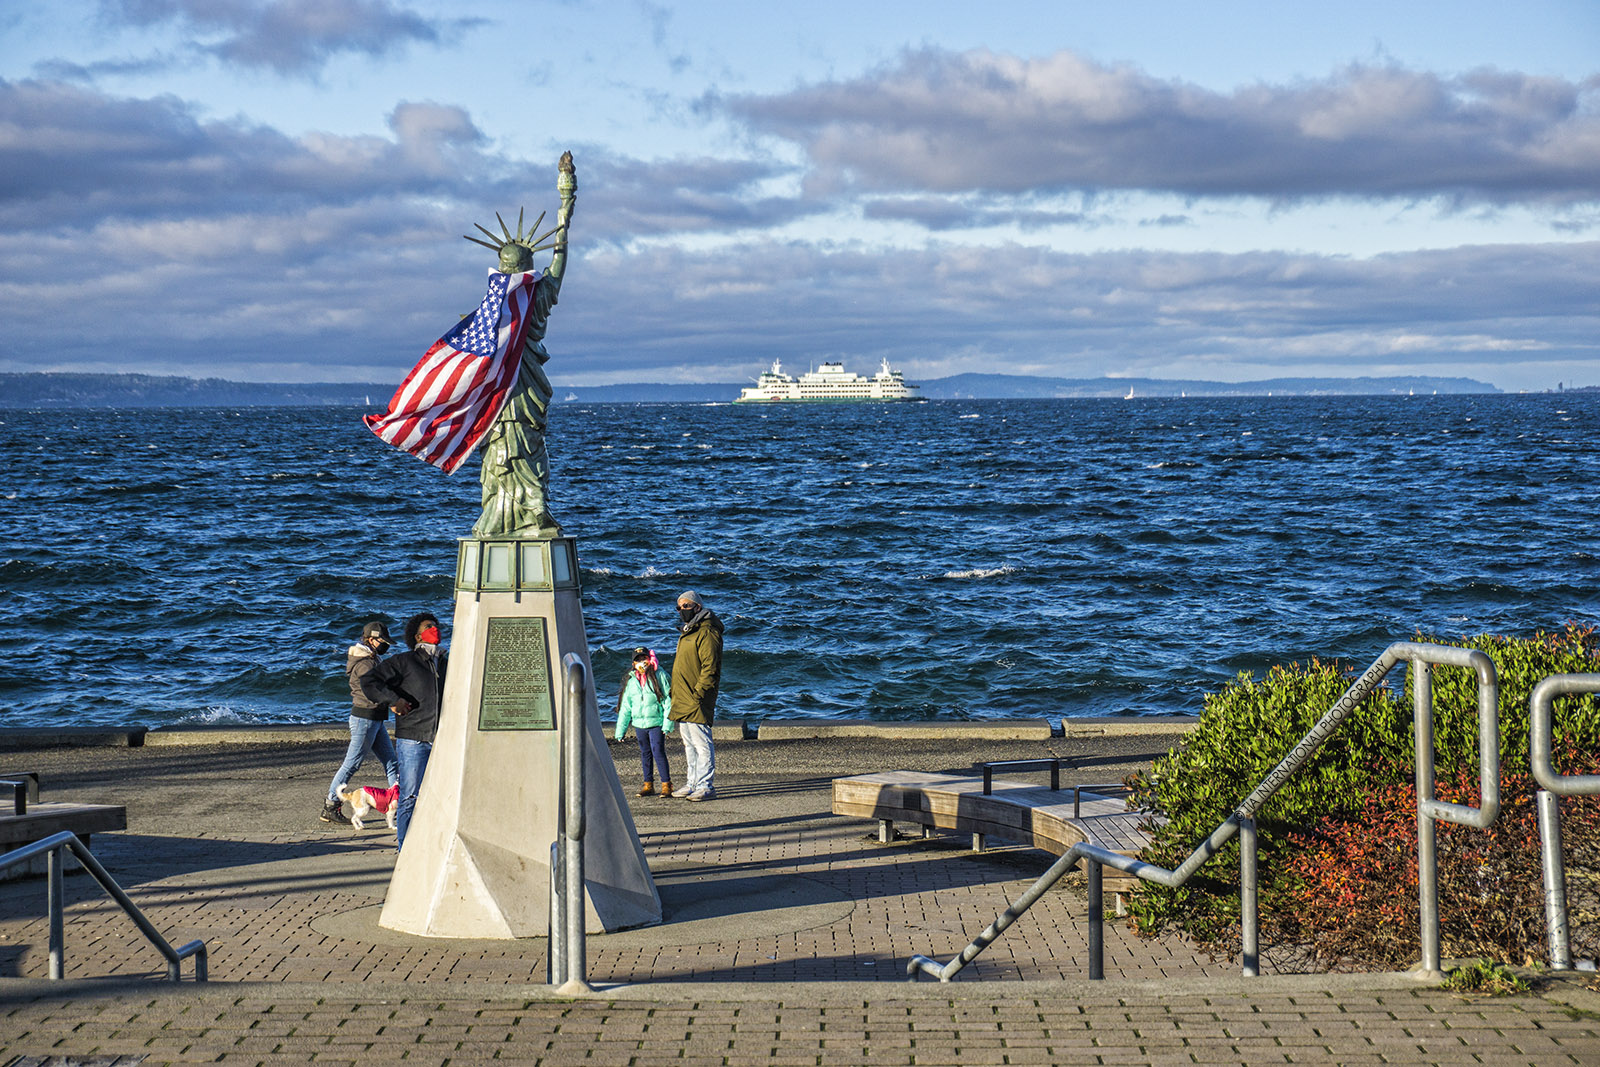 Statue of Liberty Plaza, Alki Beach, Seattle. (December 28, 2020).